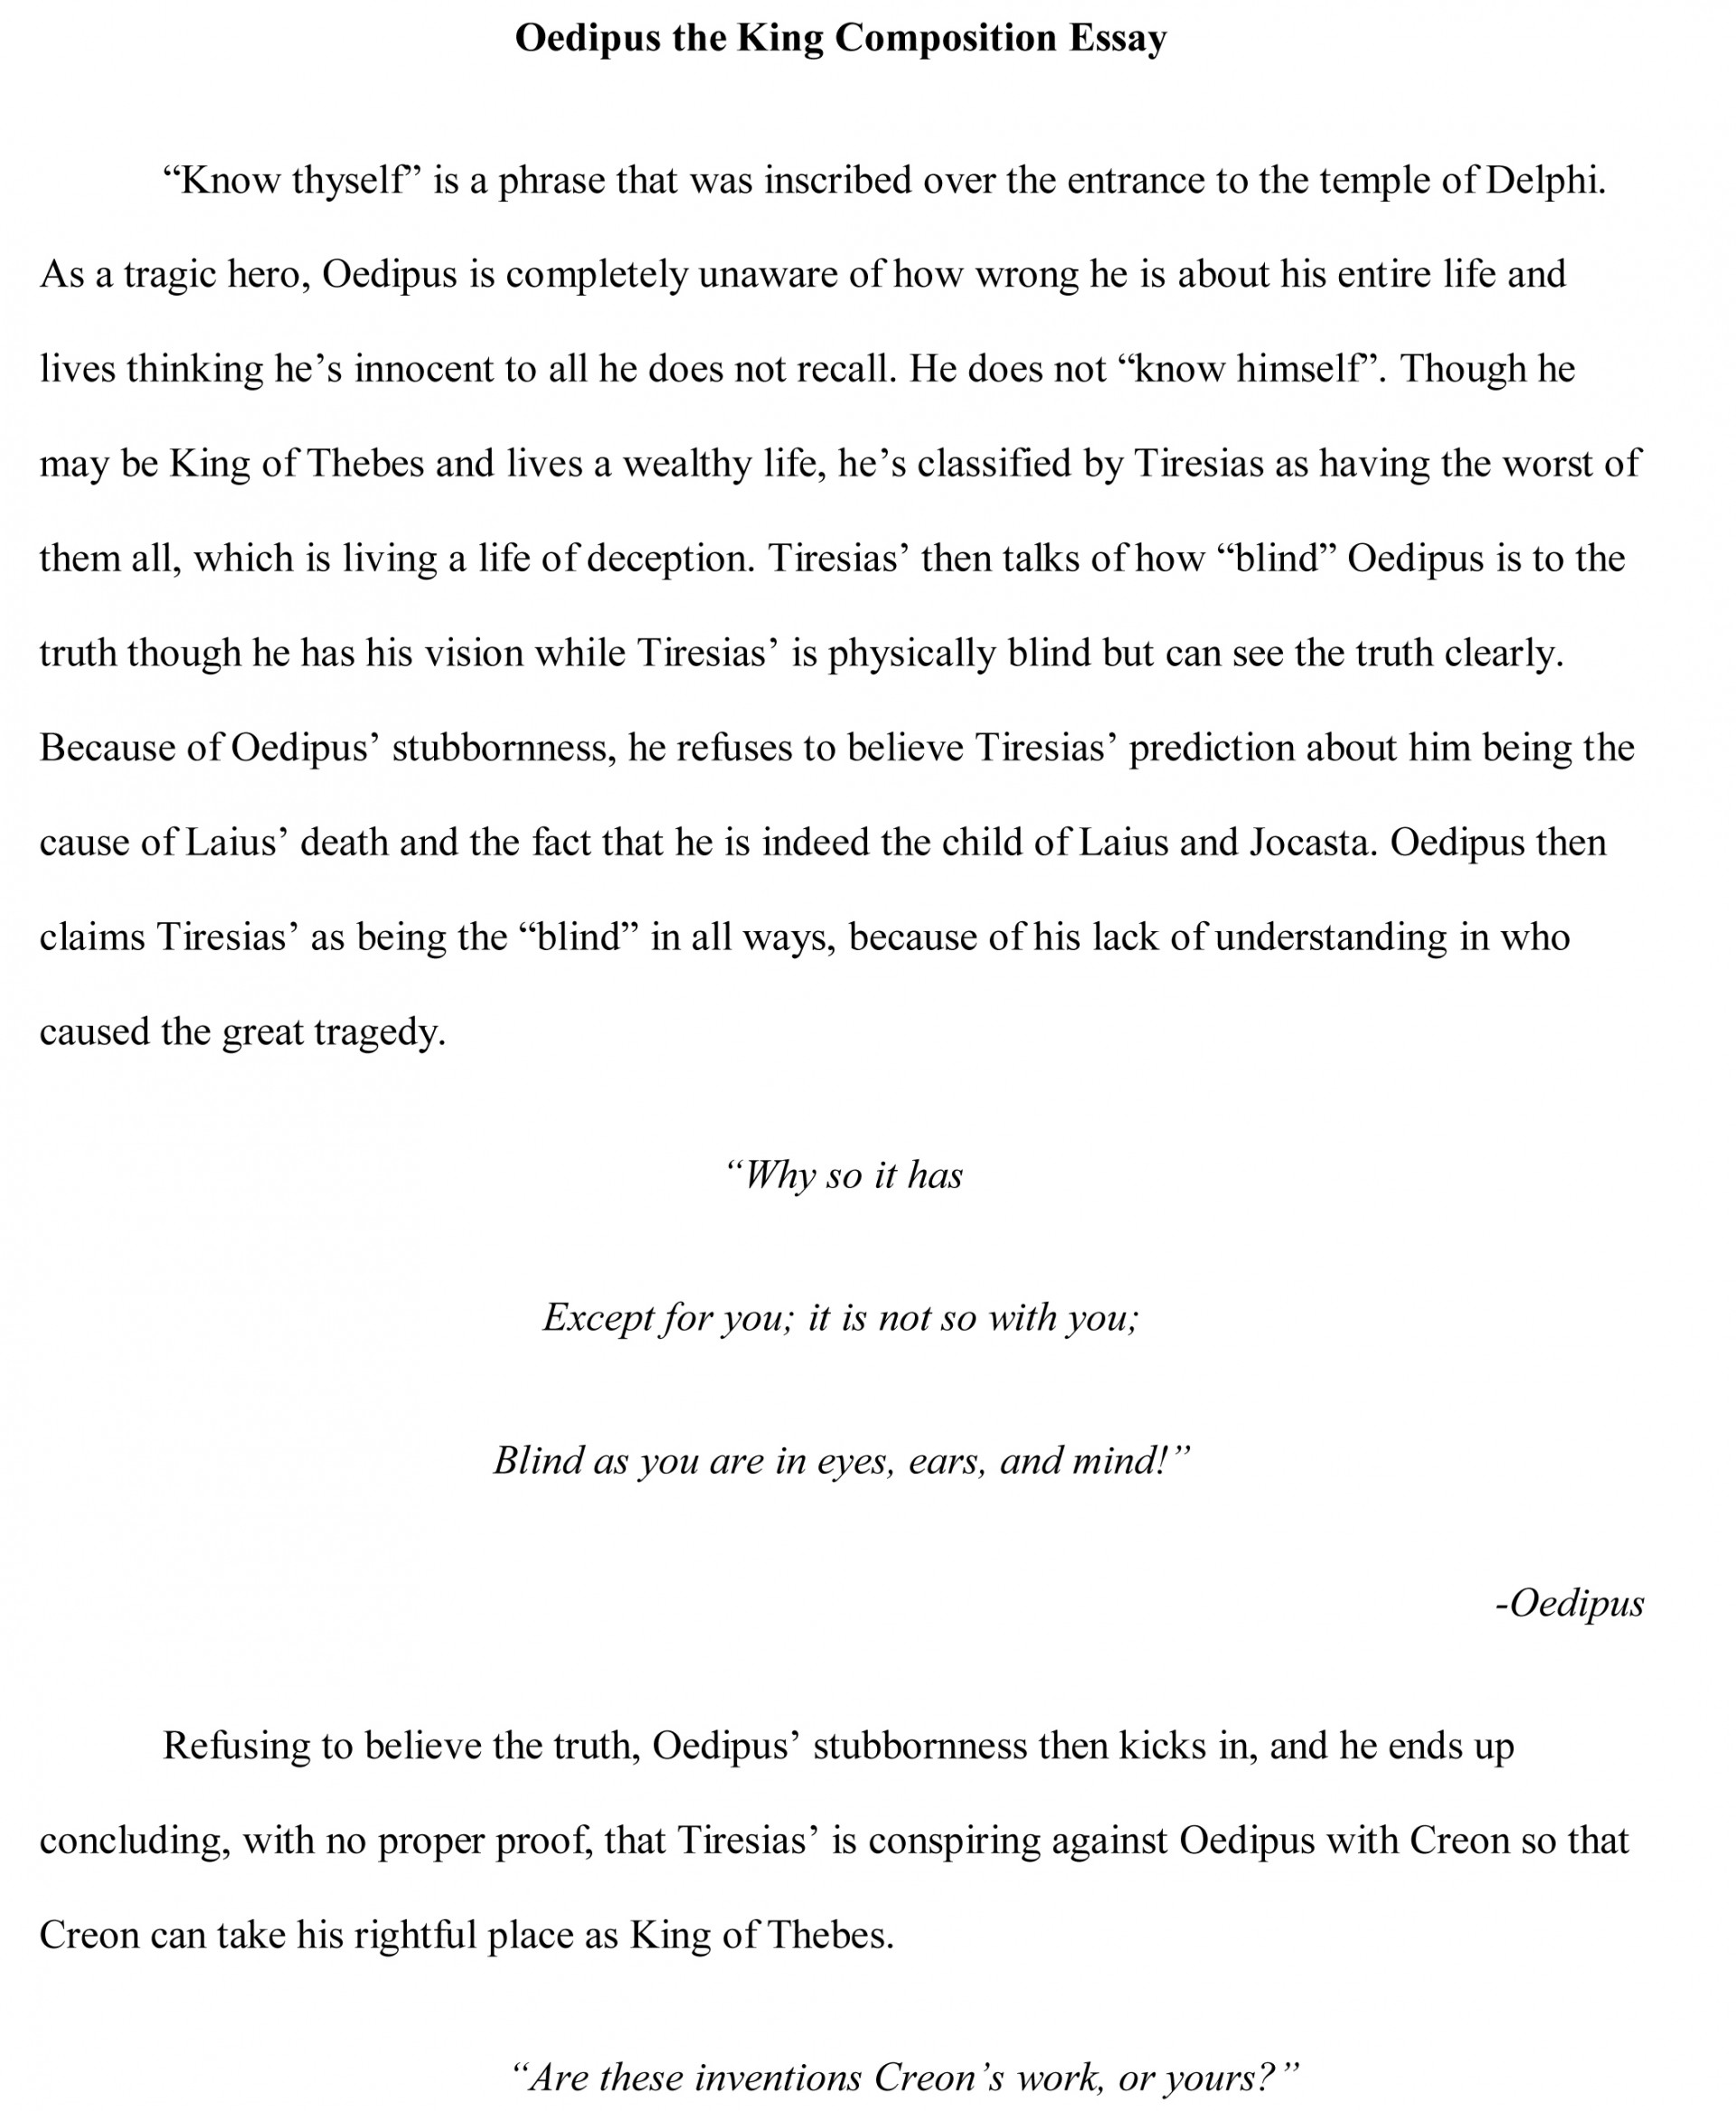 009 An Essay About My Hero Example Oedipus Free Fascinating Heroine Teacher 500 Words A Narrative 1920